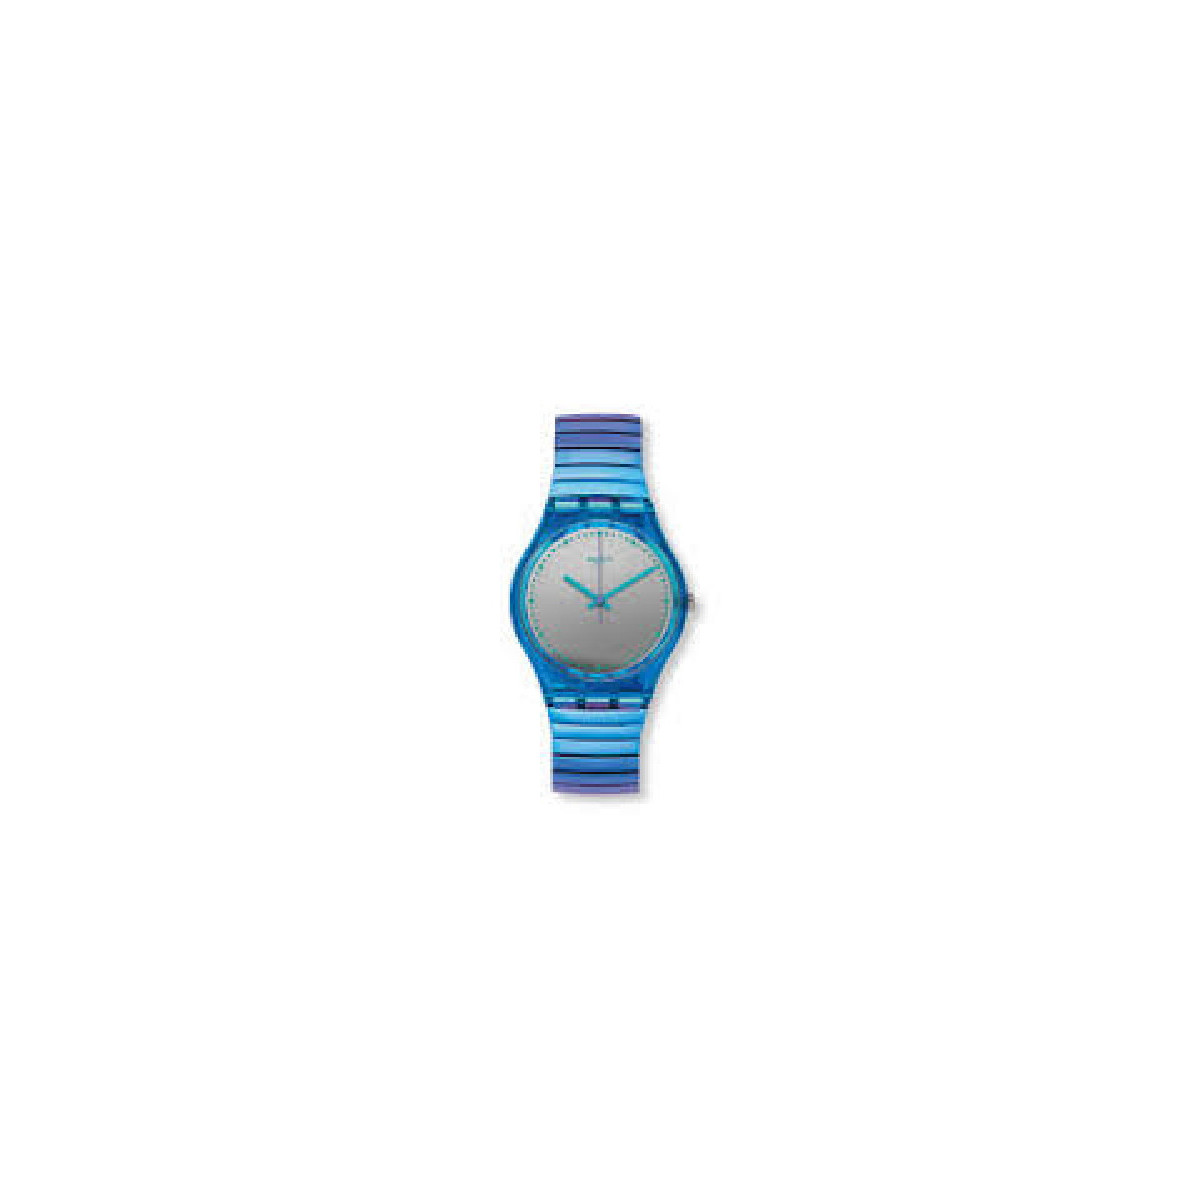 Swatch_GL117A_Flexicold_L_outlet_50%